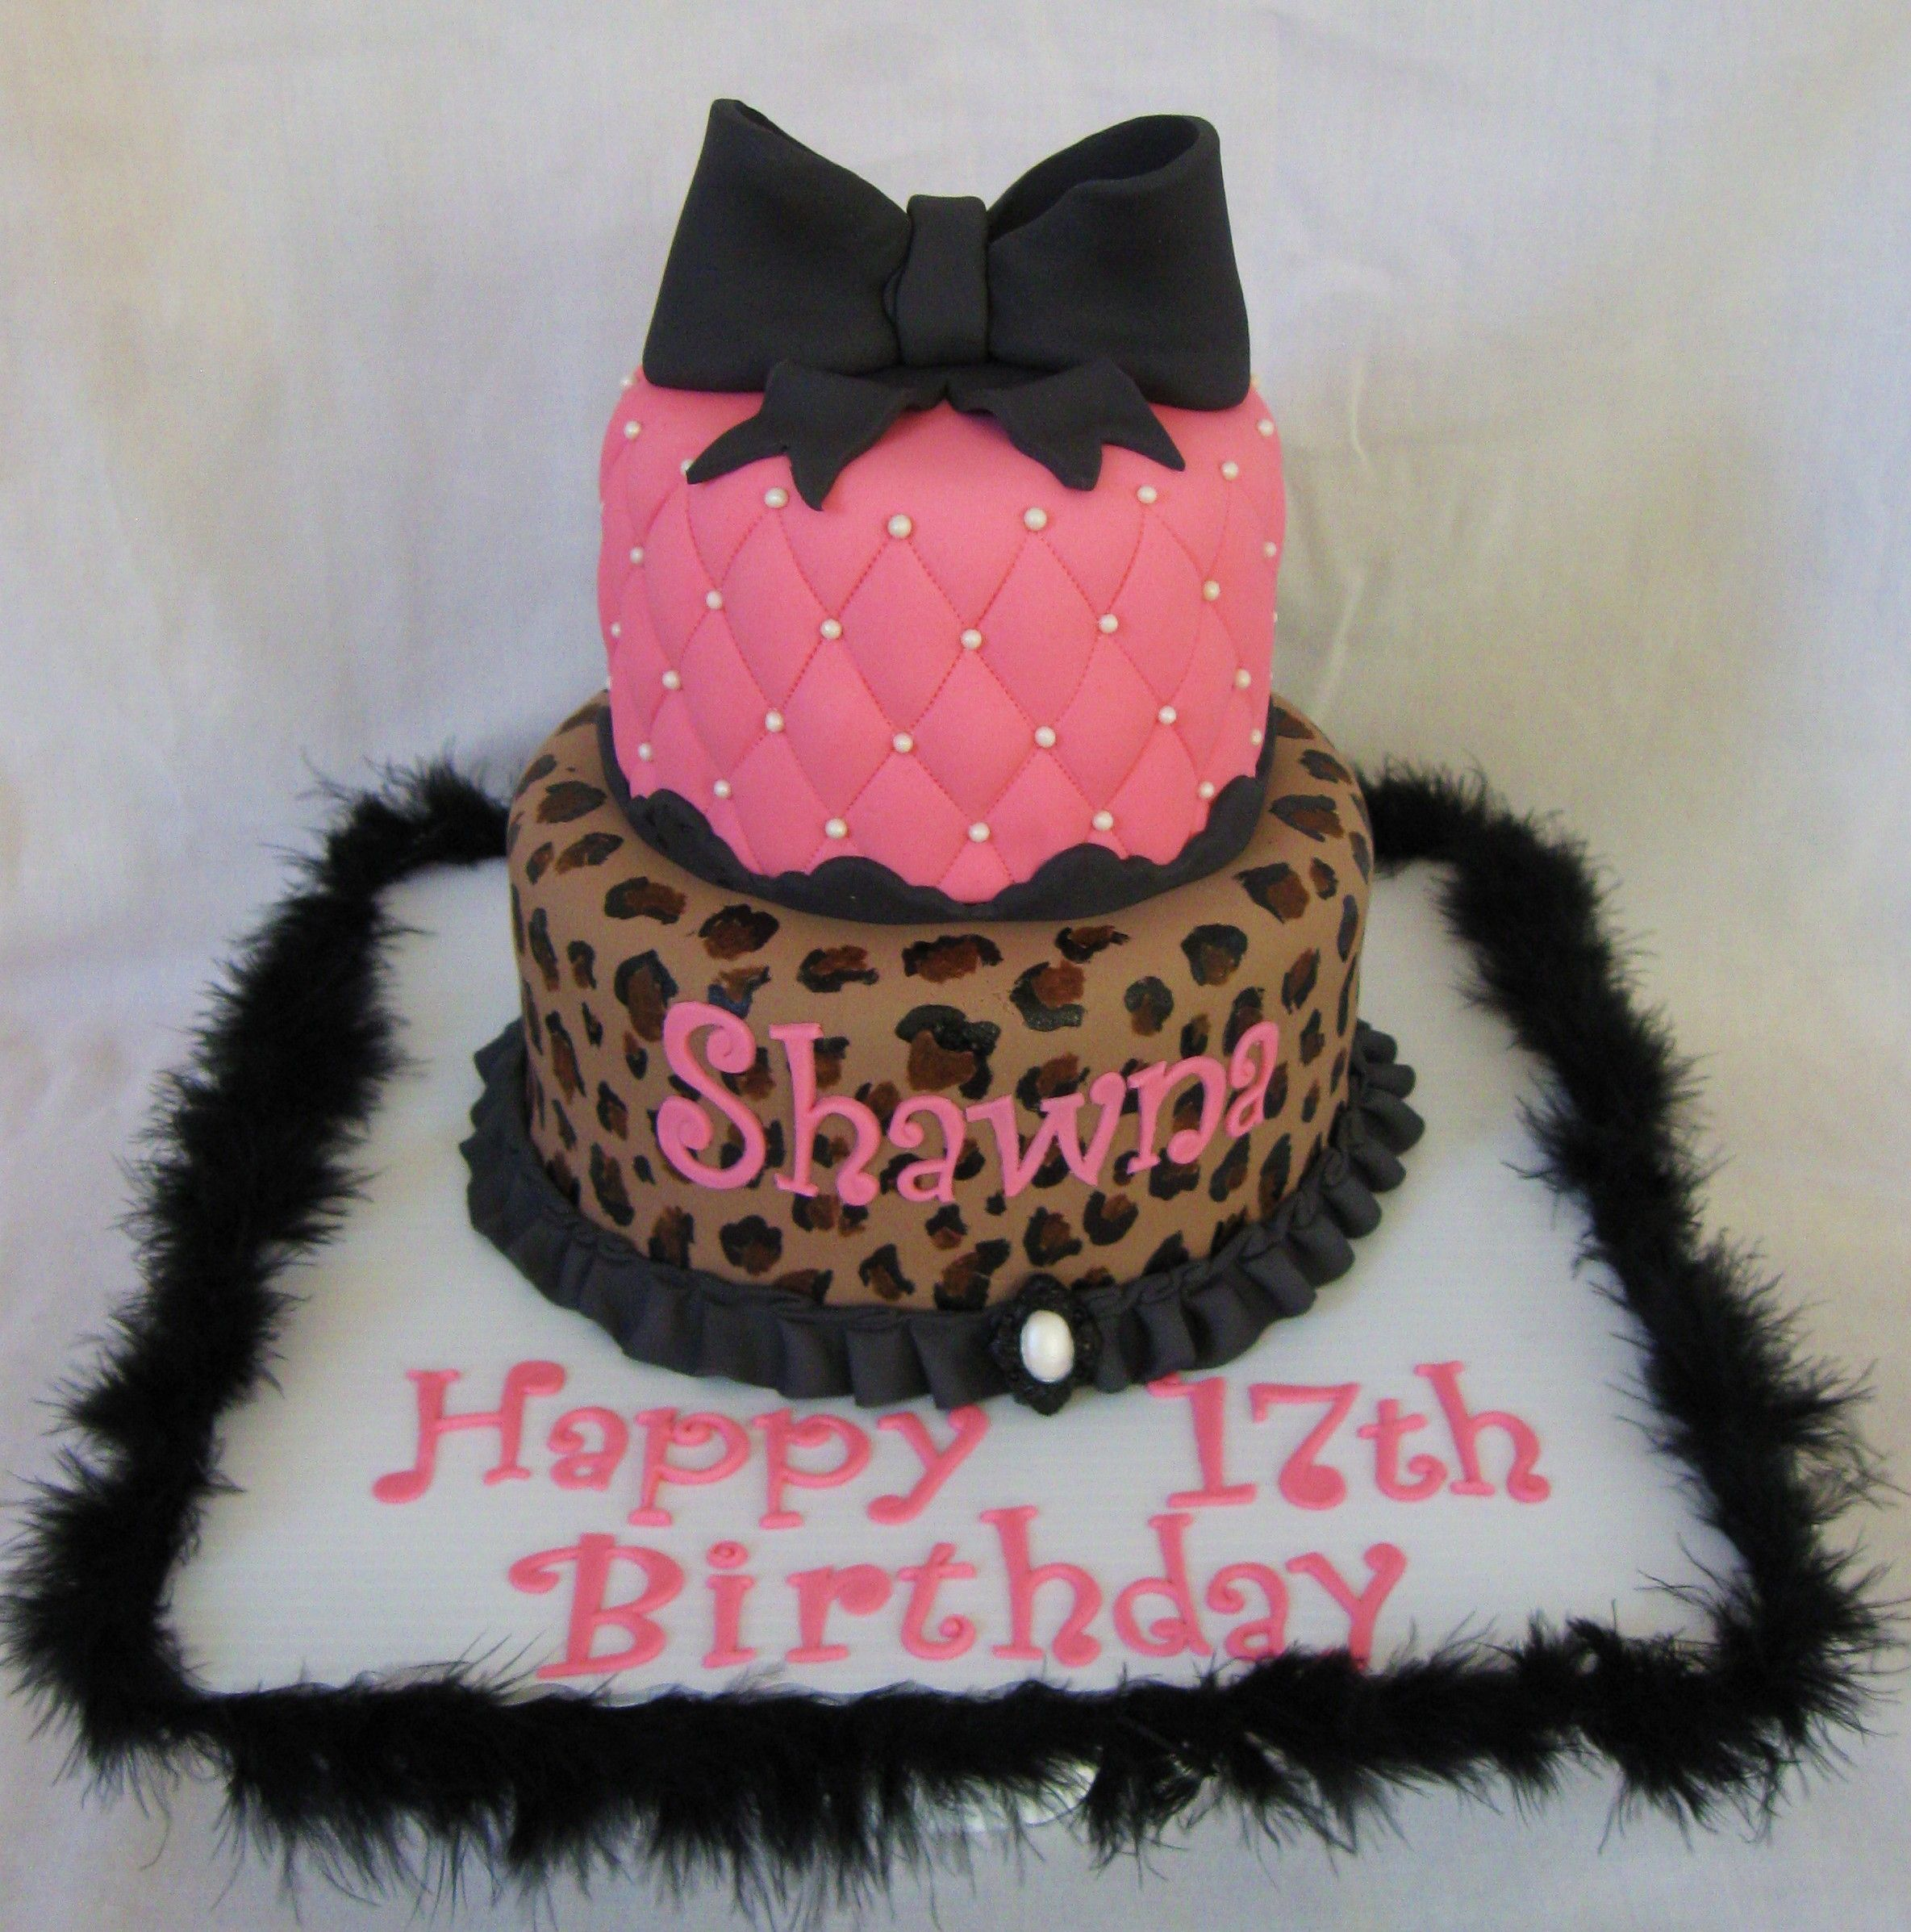 Admirable Cheetah Print Tiered Cake With Images Cool Birthday Cakes Personalised Birthday Cards Petedlily Jamesorg